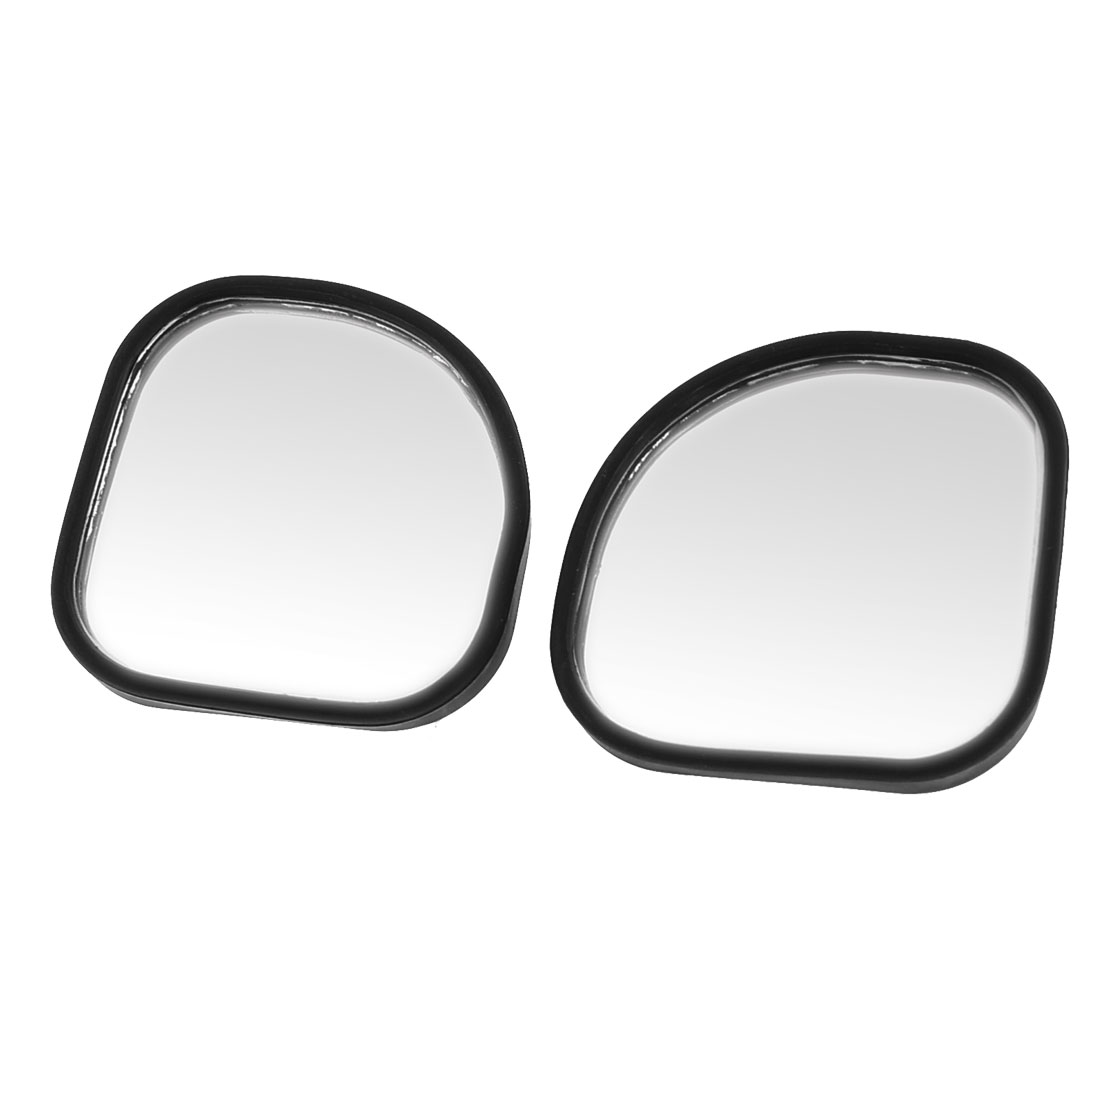 Car Automobile Black Plastic Shell Side Rear View Blind Spot Mirror 2PCS